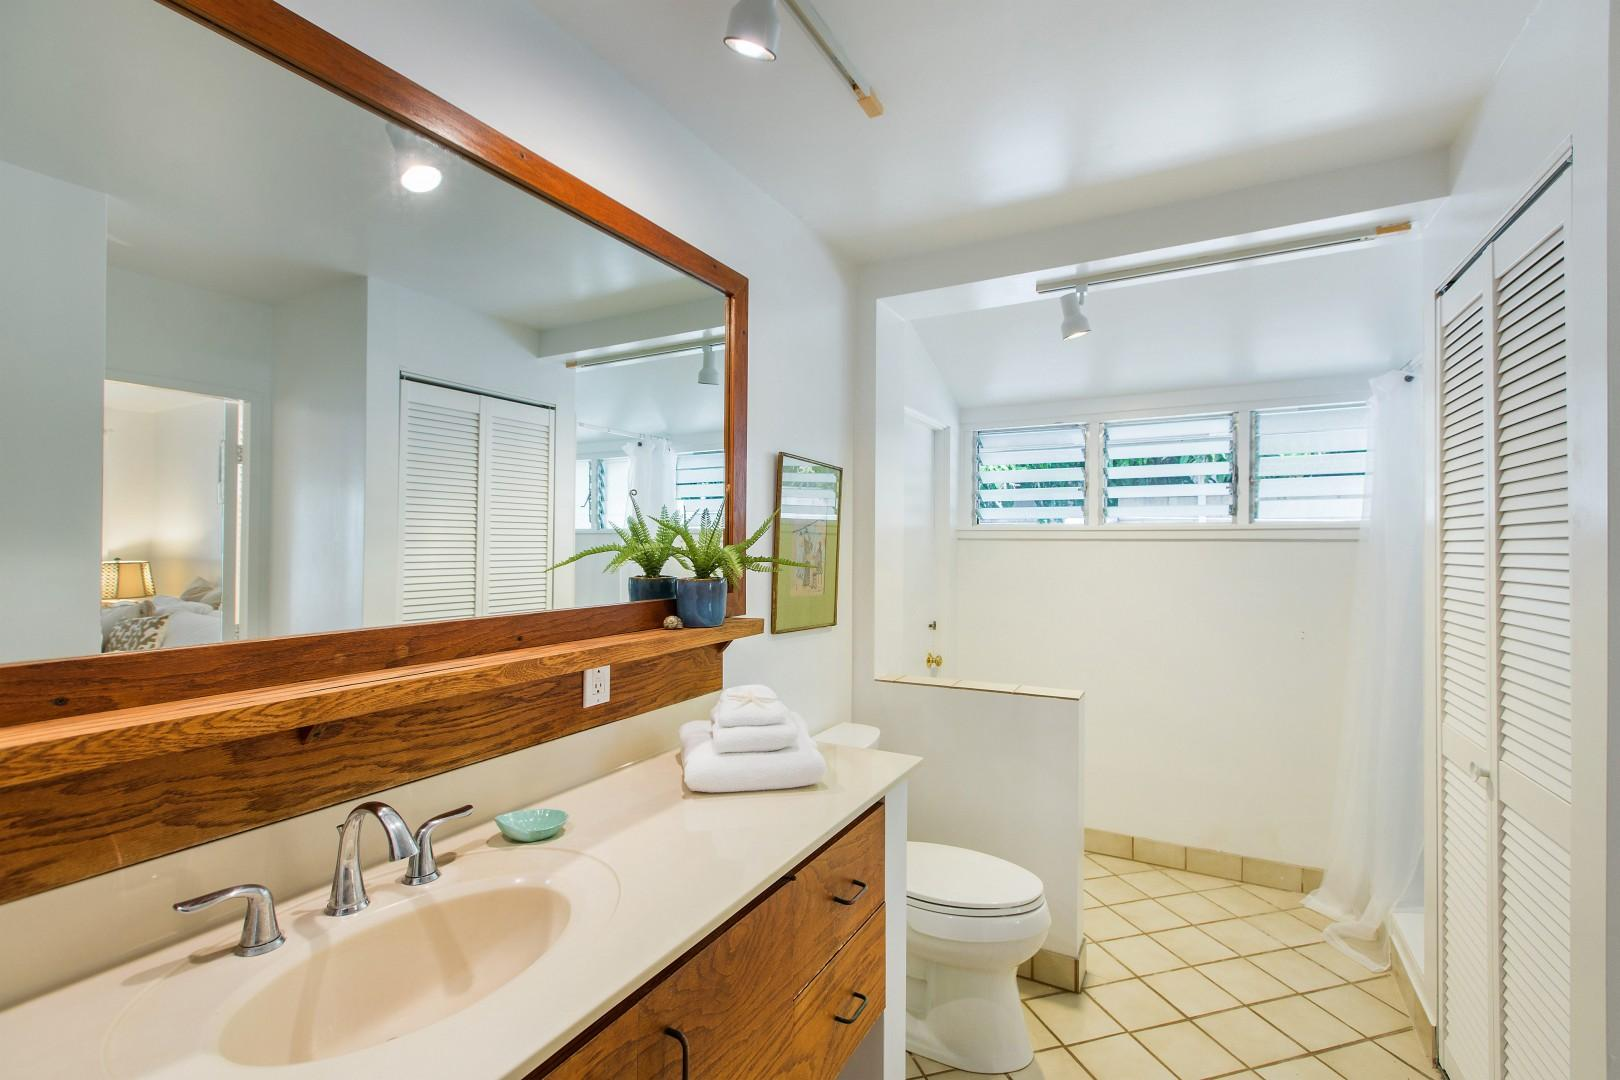 Ensuite bathroom to downstairs master bedroom. Entry from hallway or master bedroom.